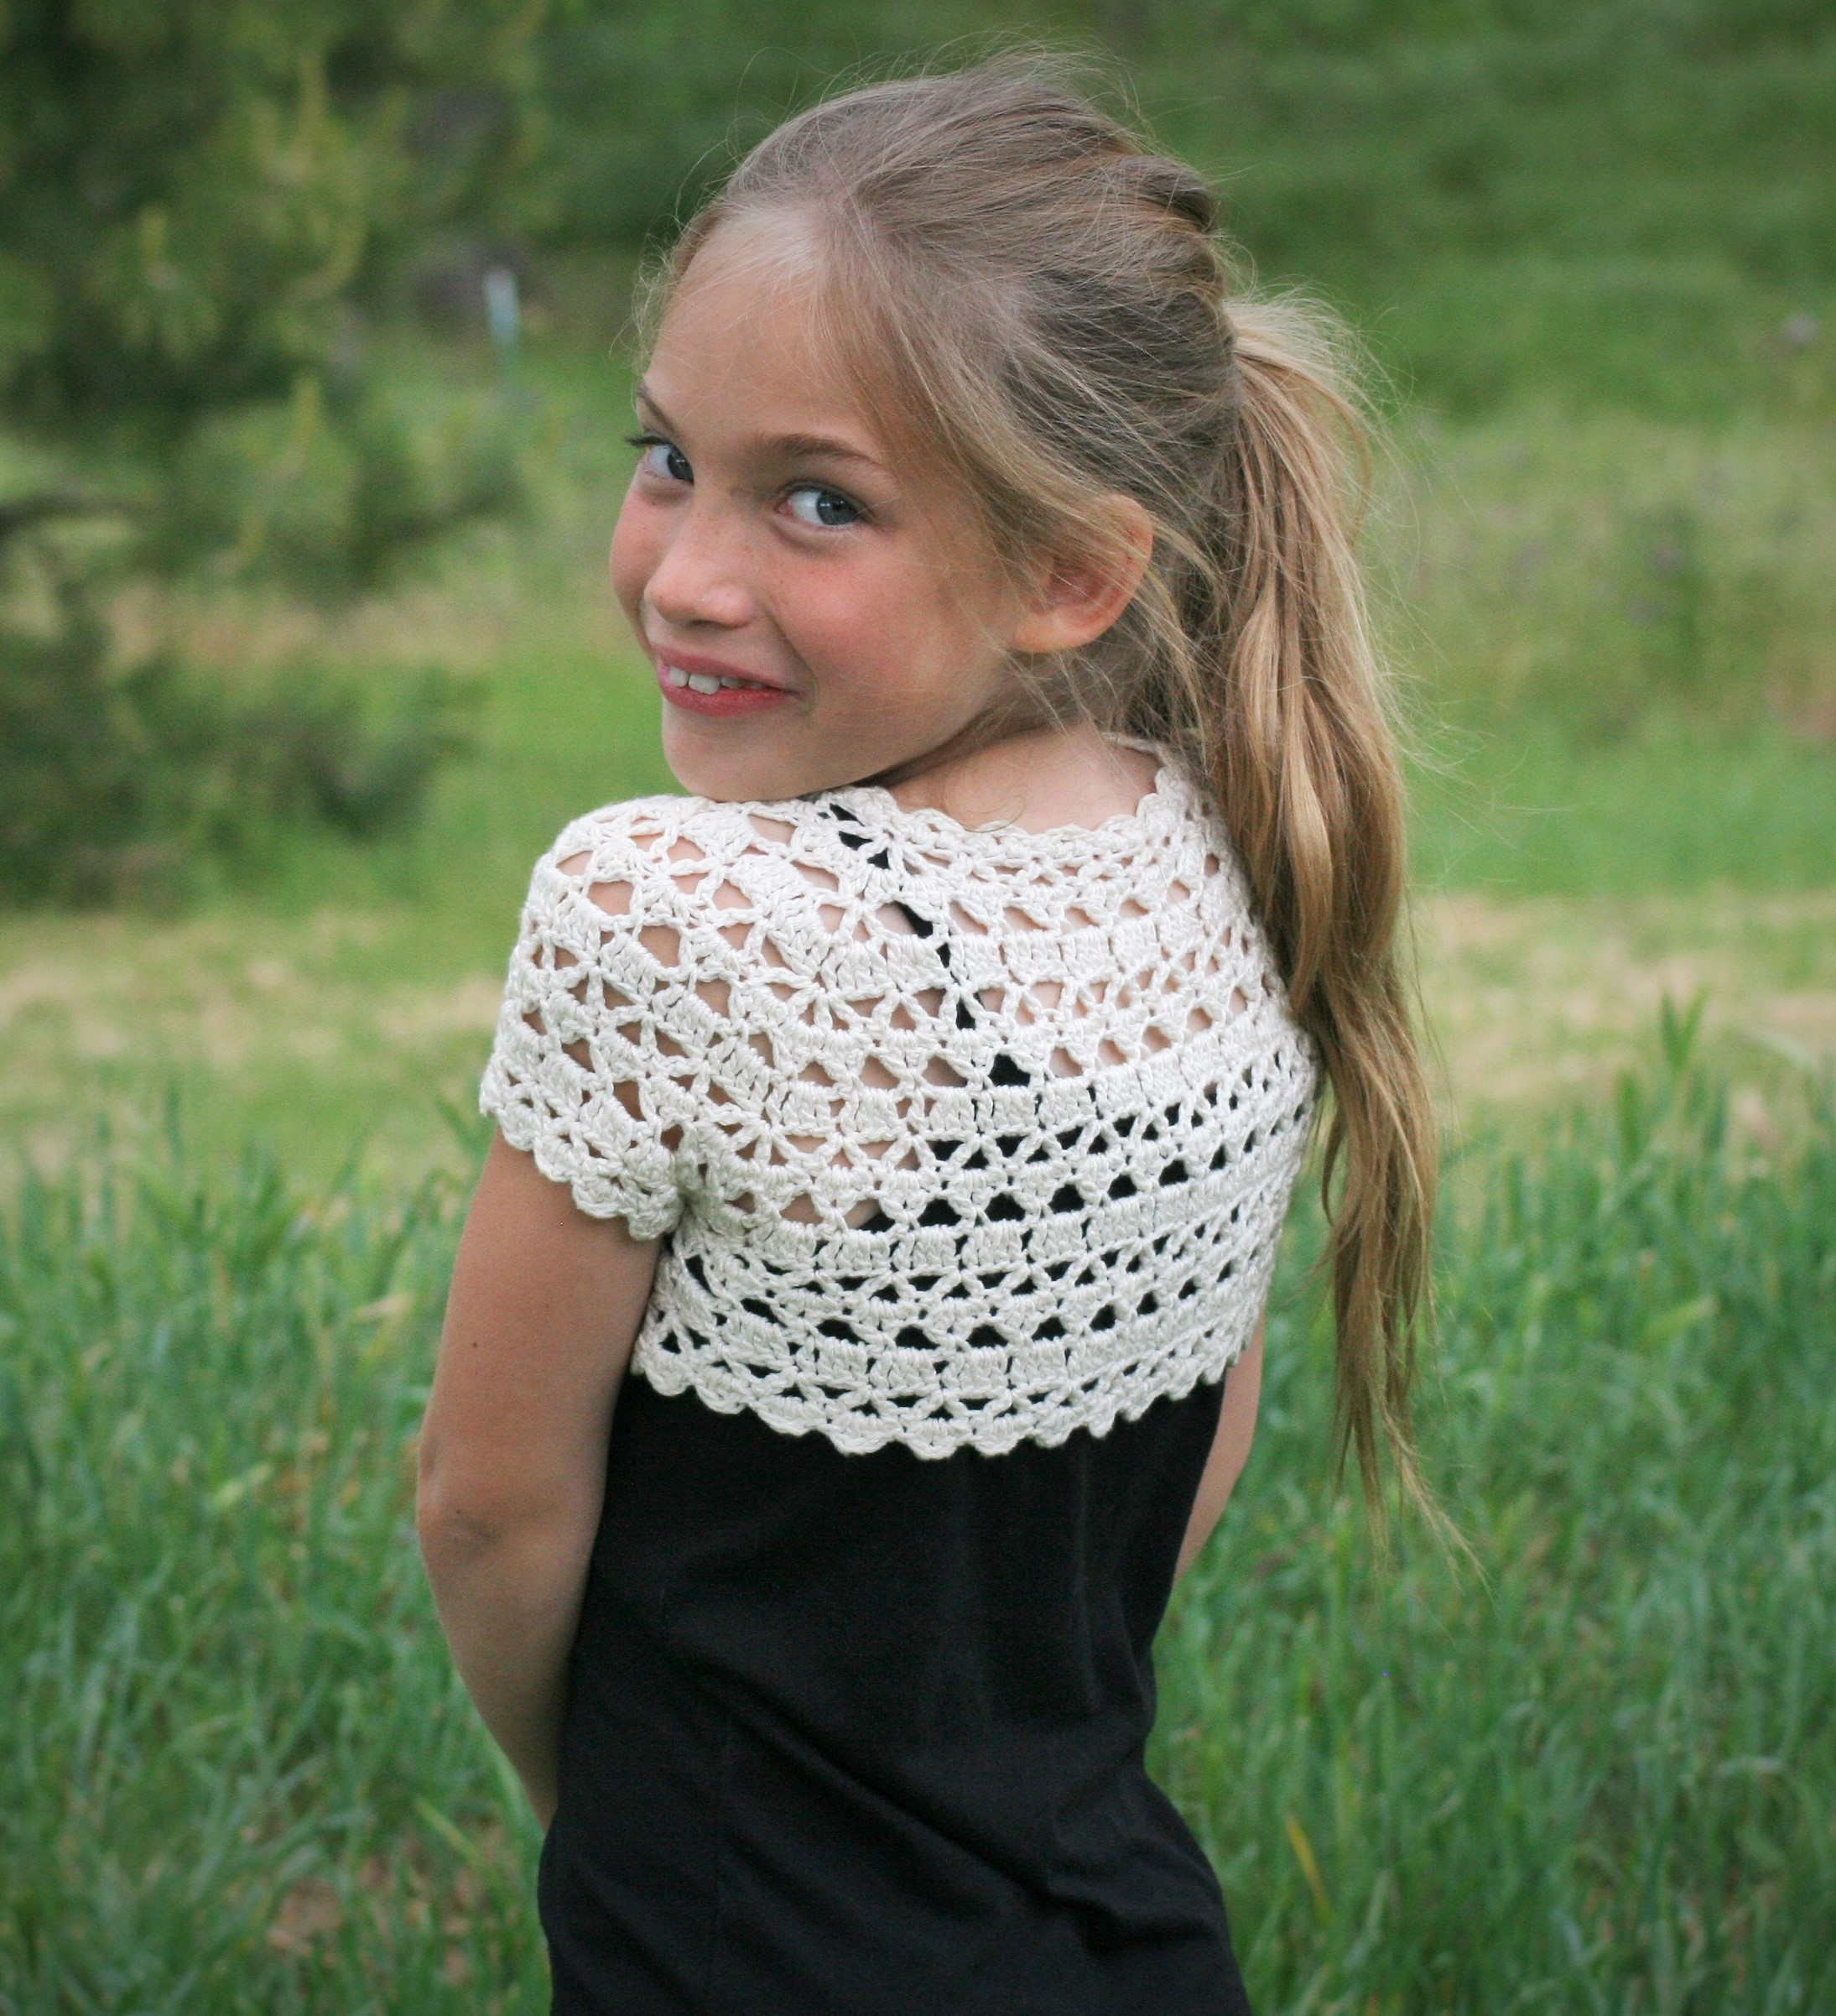 Introducing DJC Lotus Bolero: Crochet Conference Ready | Doris Chan ...